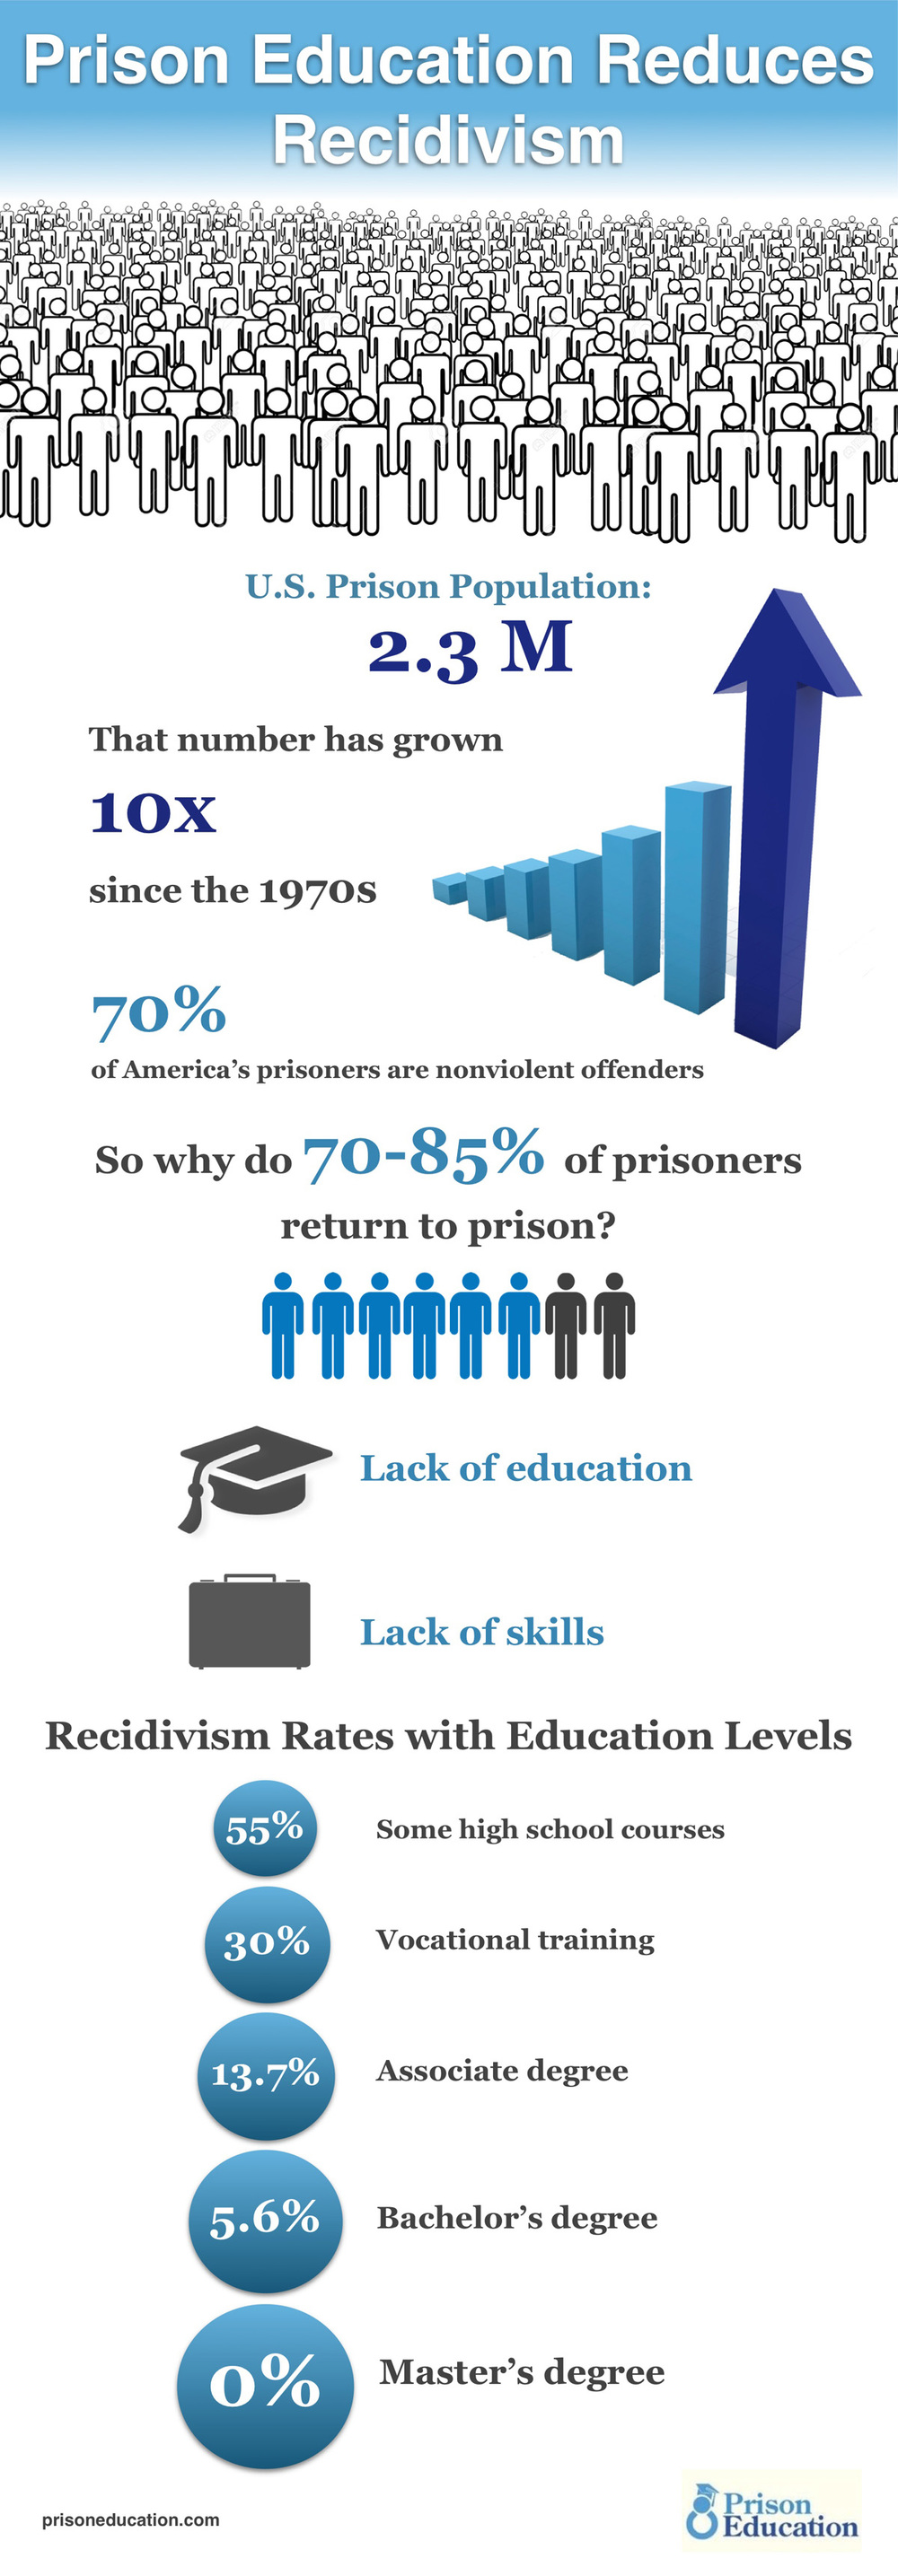 Prison Education Reduces Recidivism